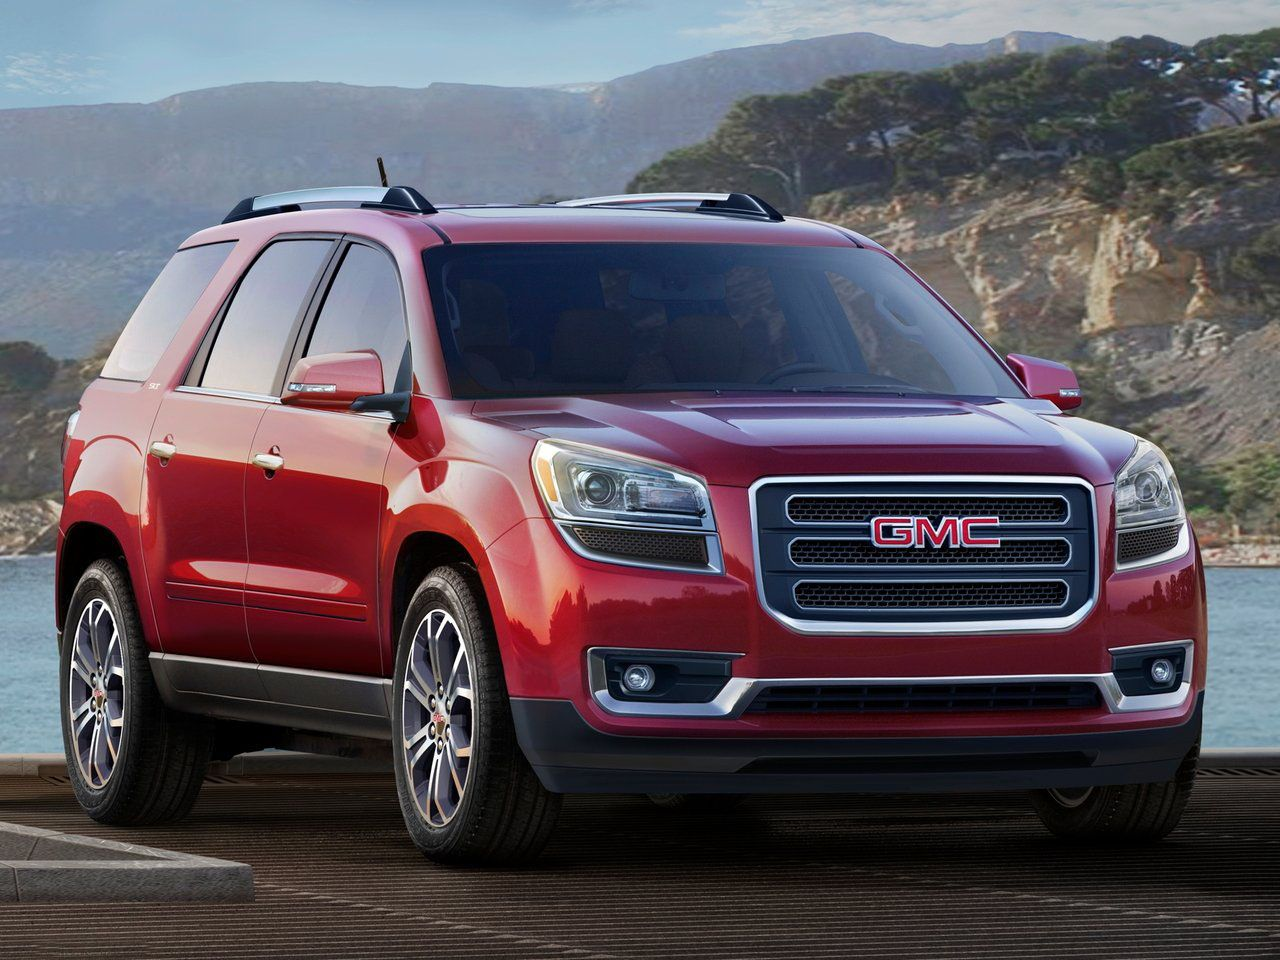 New 2013 Gmc Acadia Dicknorris Com Gmc Suv Crossover Suv Best New Cars